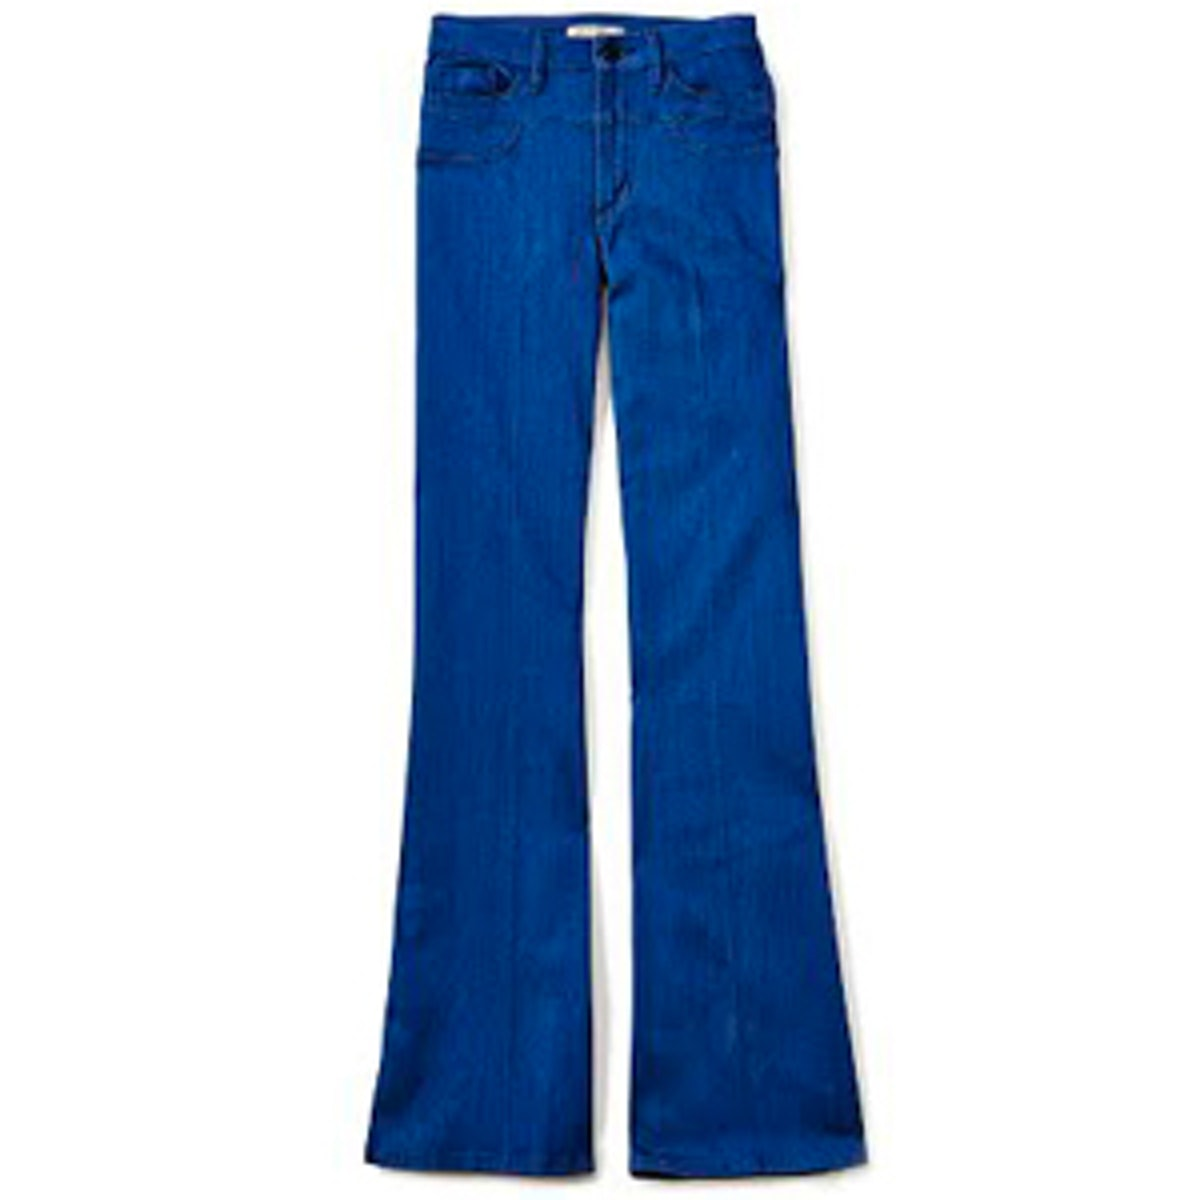 Tailored Flare Jeans